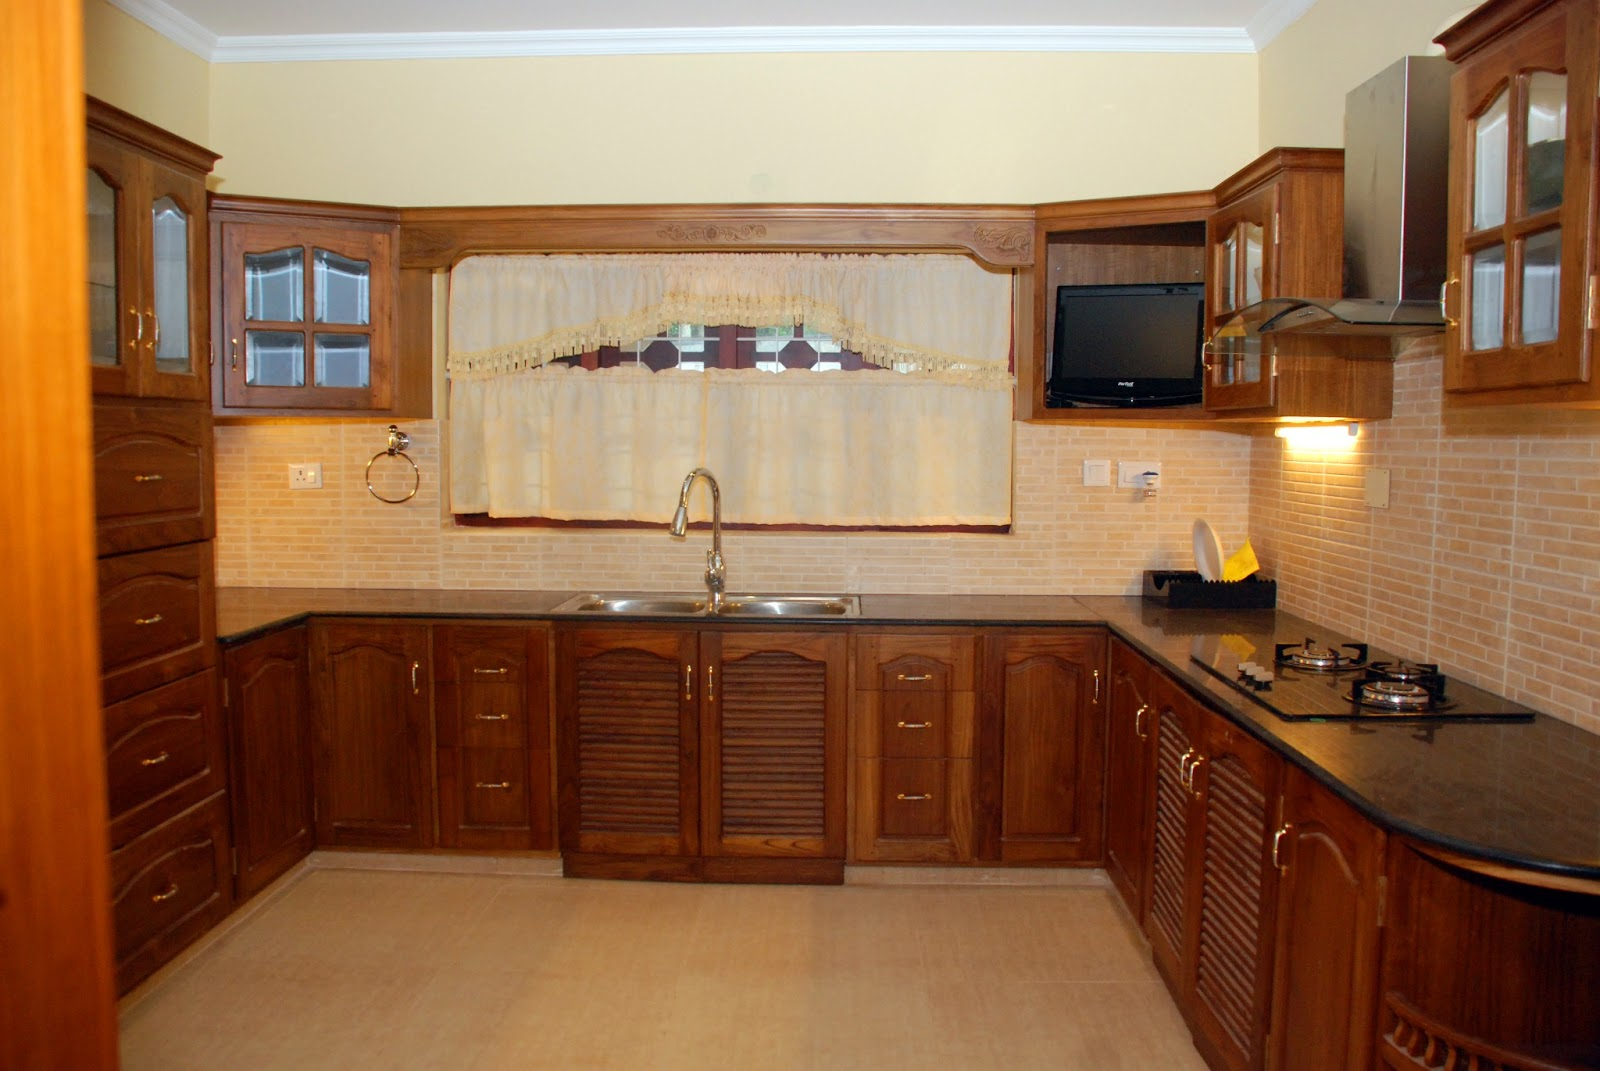 wooden kitchen cabinets in kerala kerala interior design decorations and wood works 1960